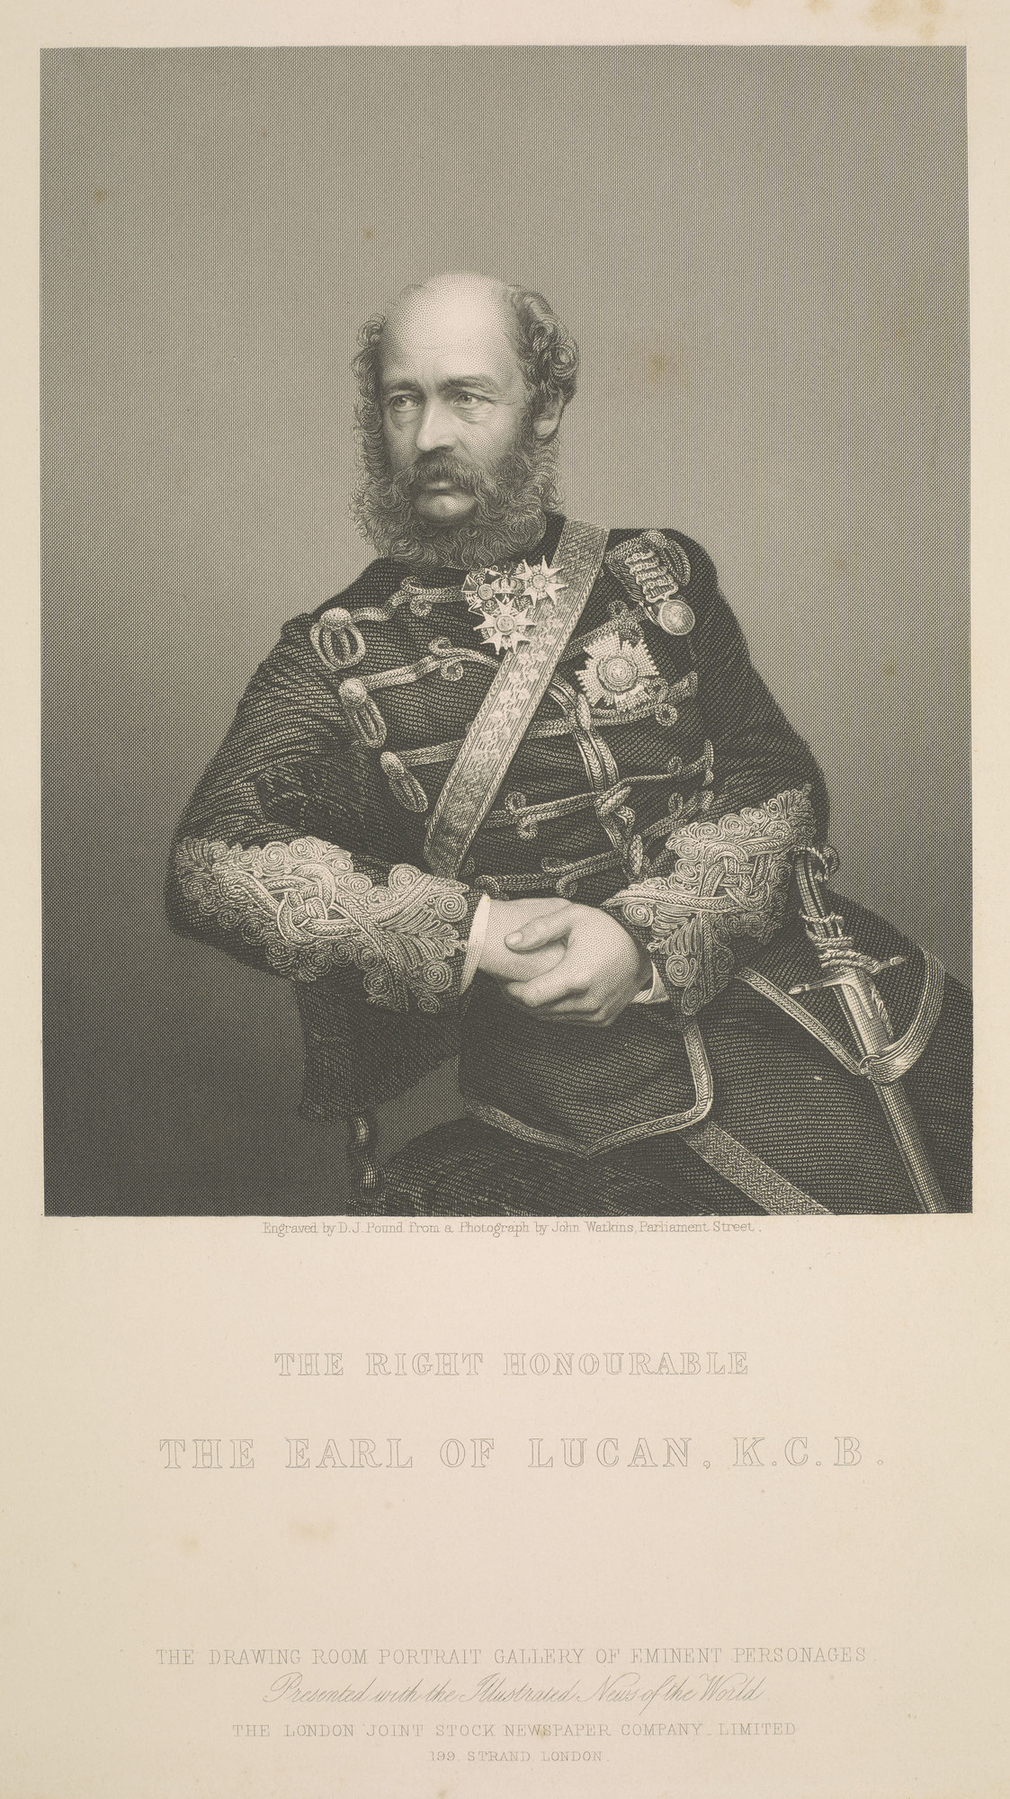 Intaglio printof George Charles Bingham, 3rd Earl of Lucan. Lord Lucan is seated facing partly left, wearing military uniform. The print is after a photograph by John Watkins.